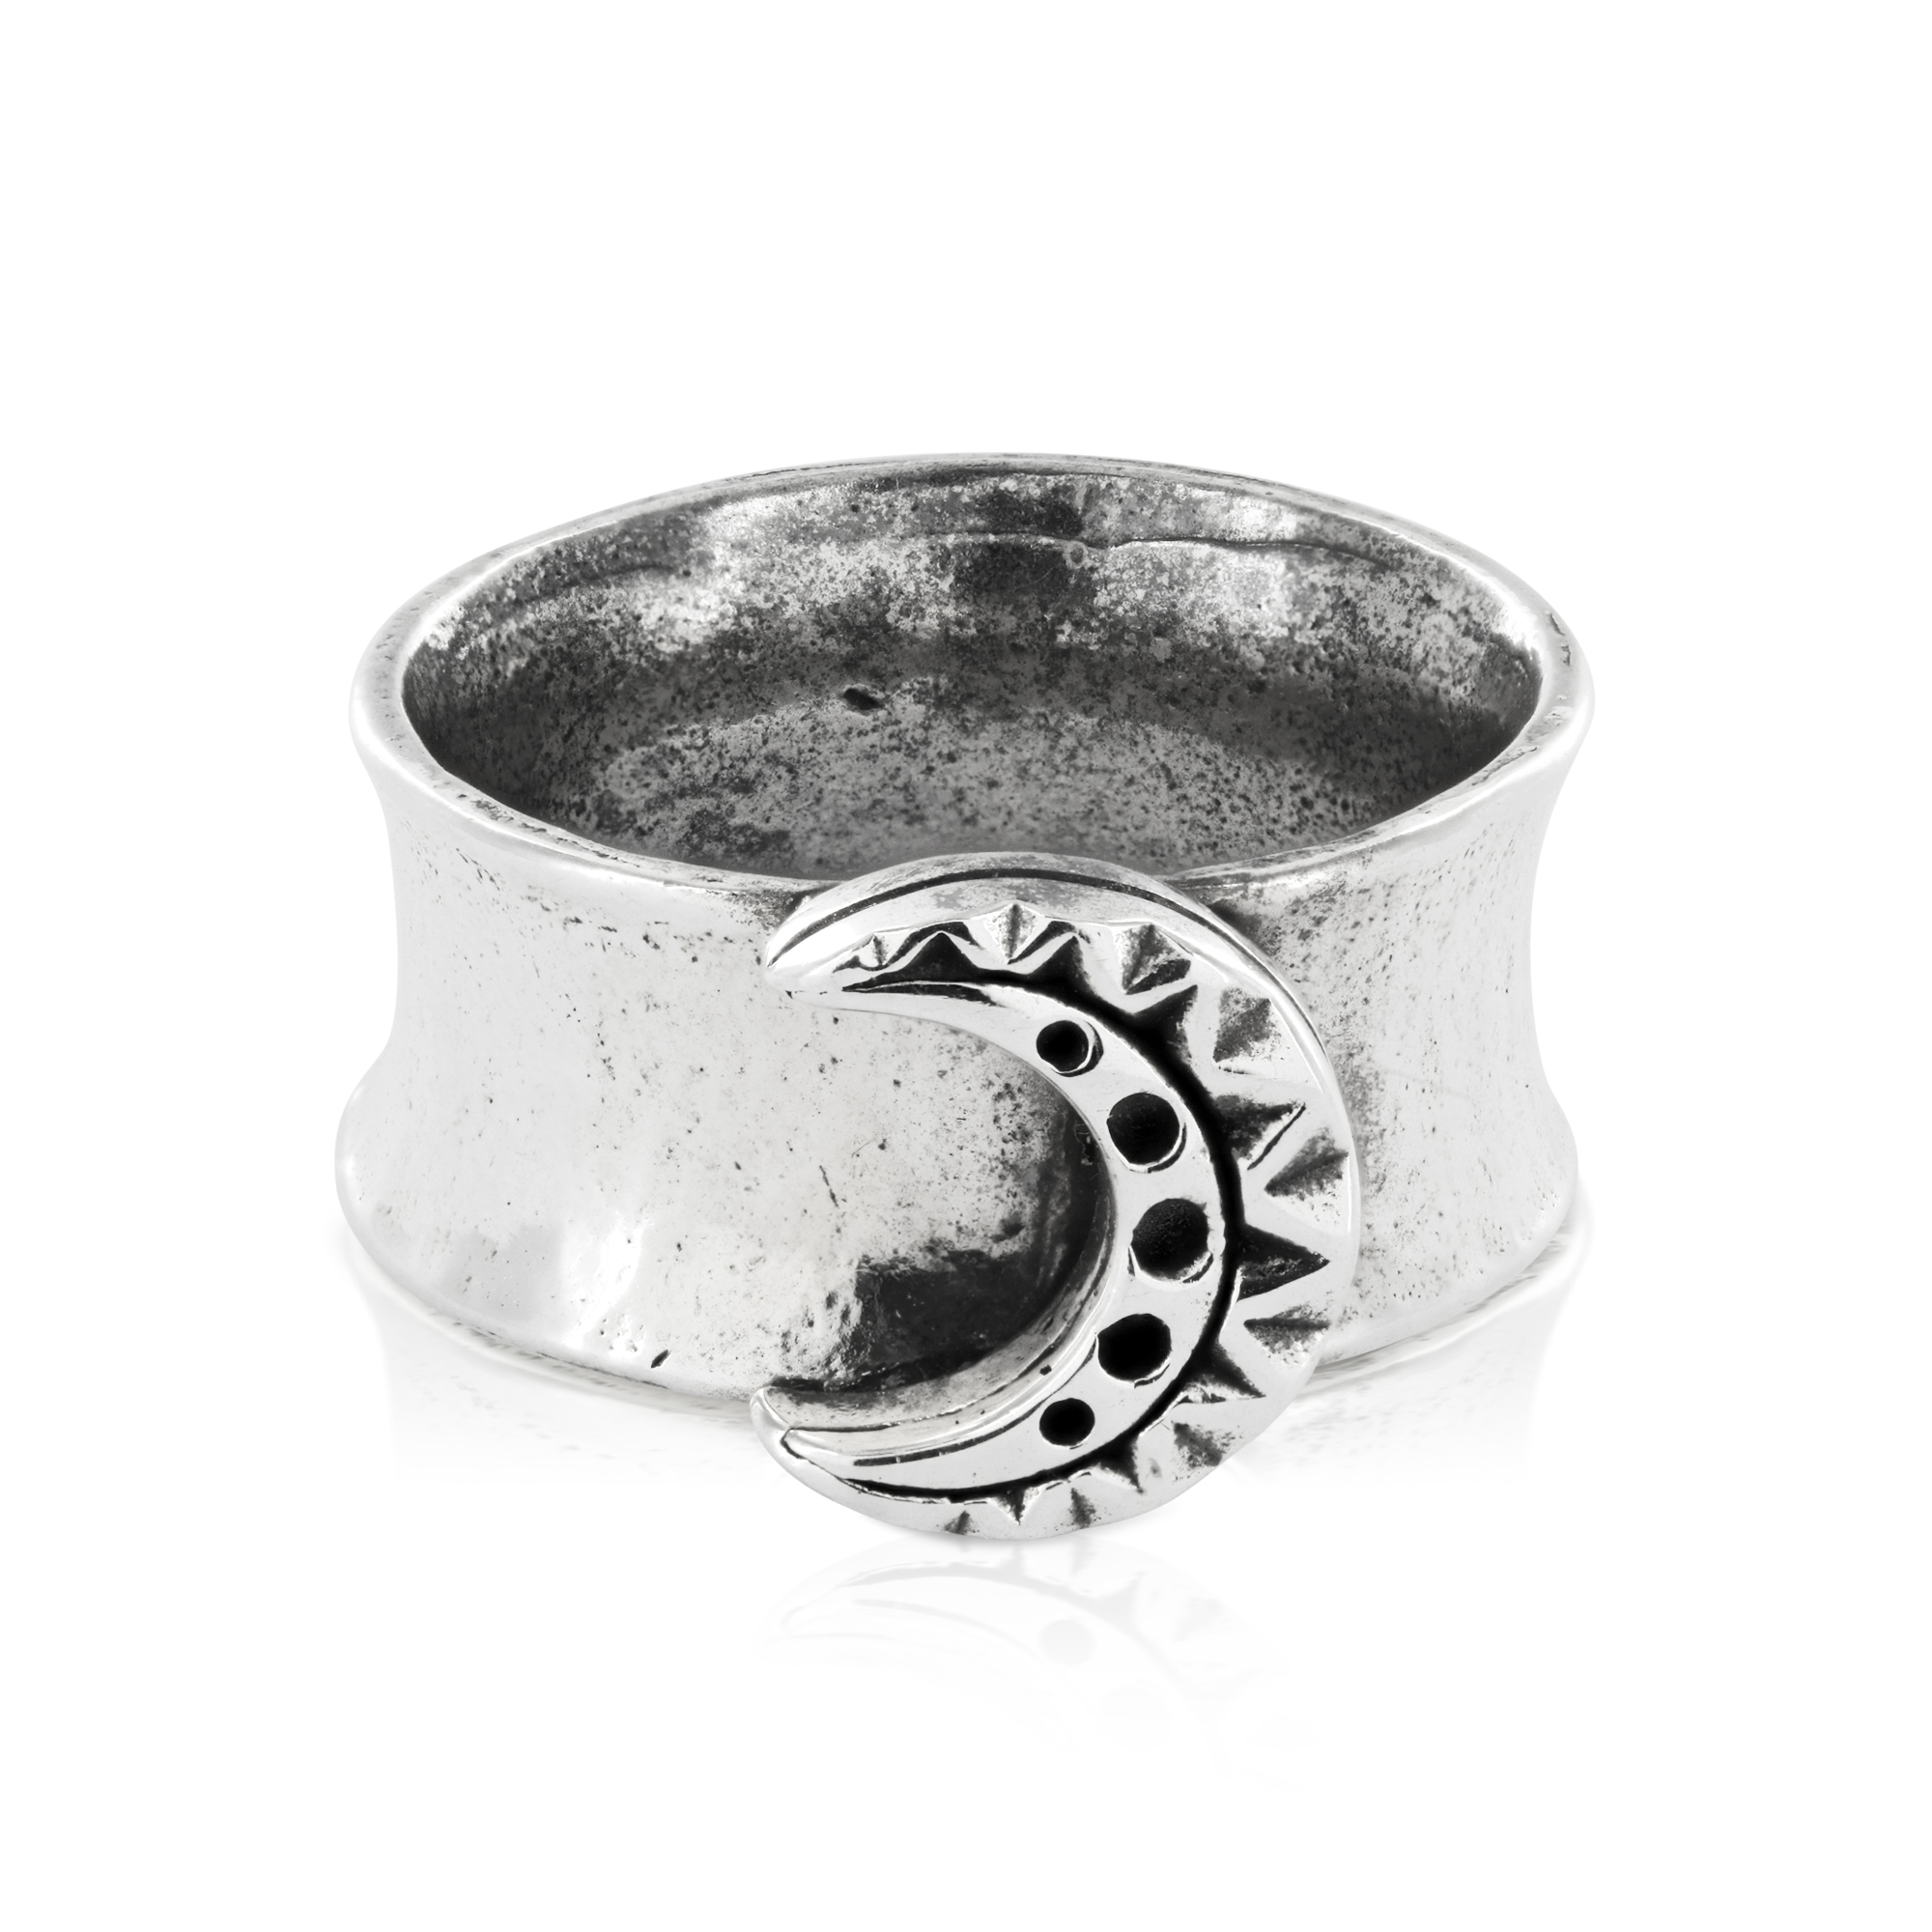 large ring of indian empowerment moon stone for womens rings women product